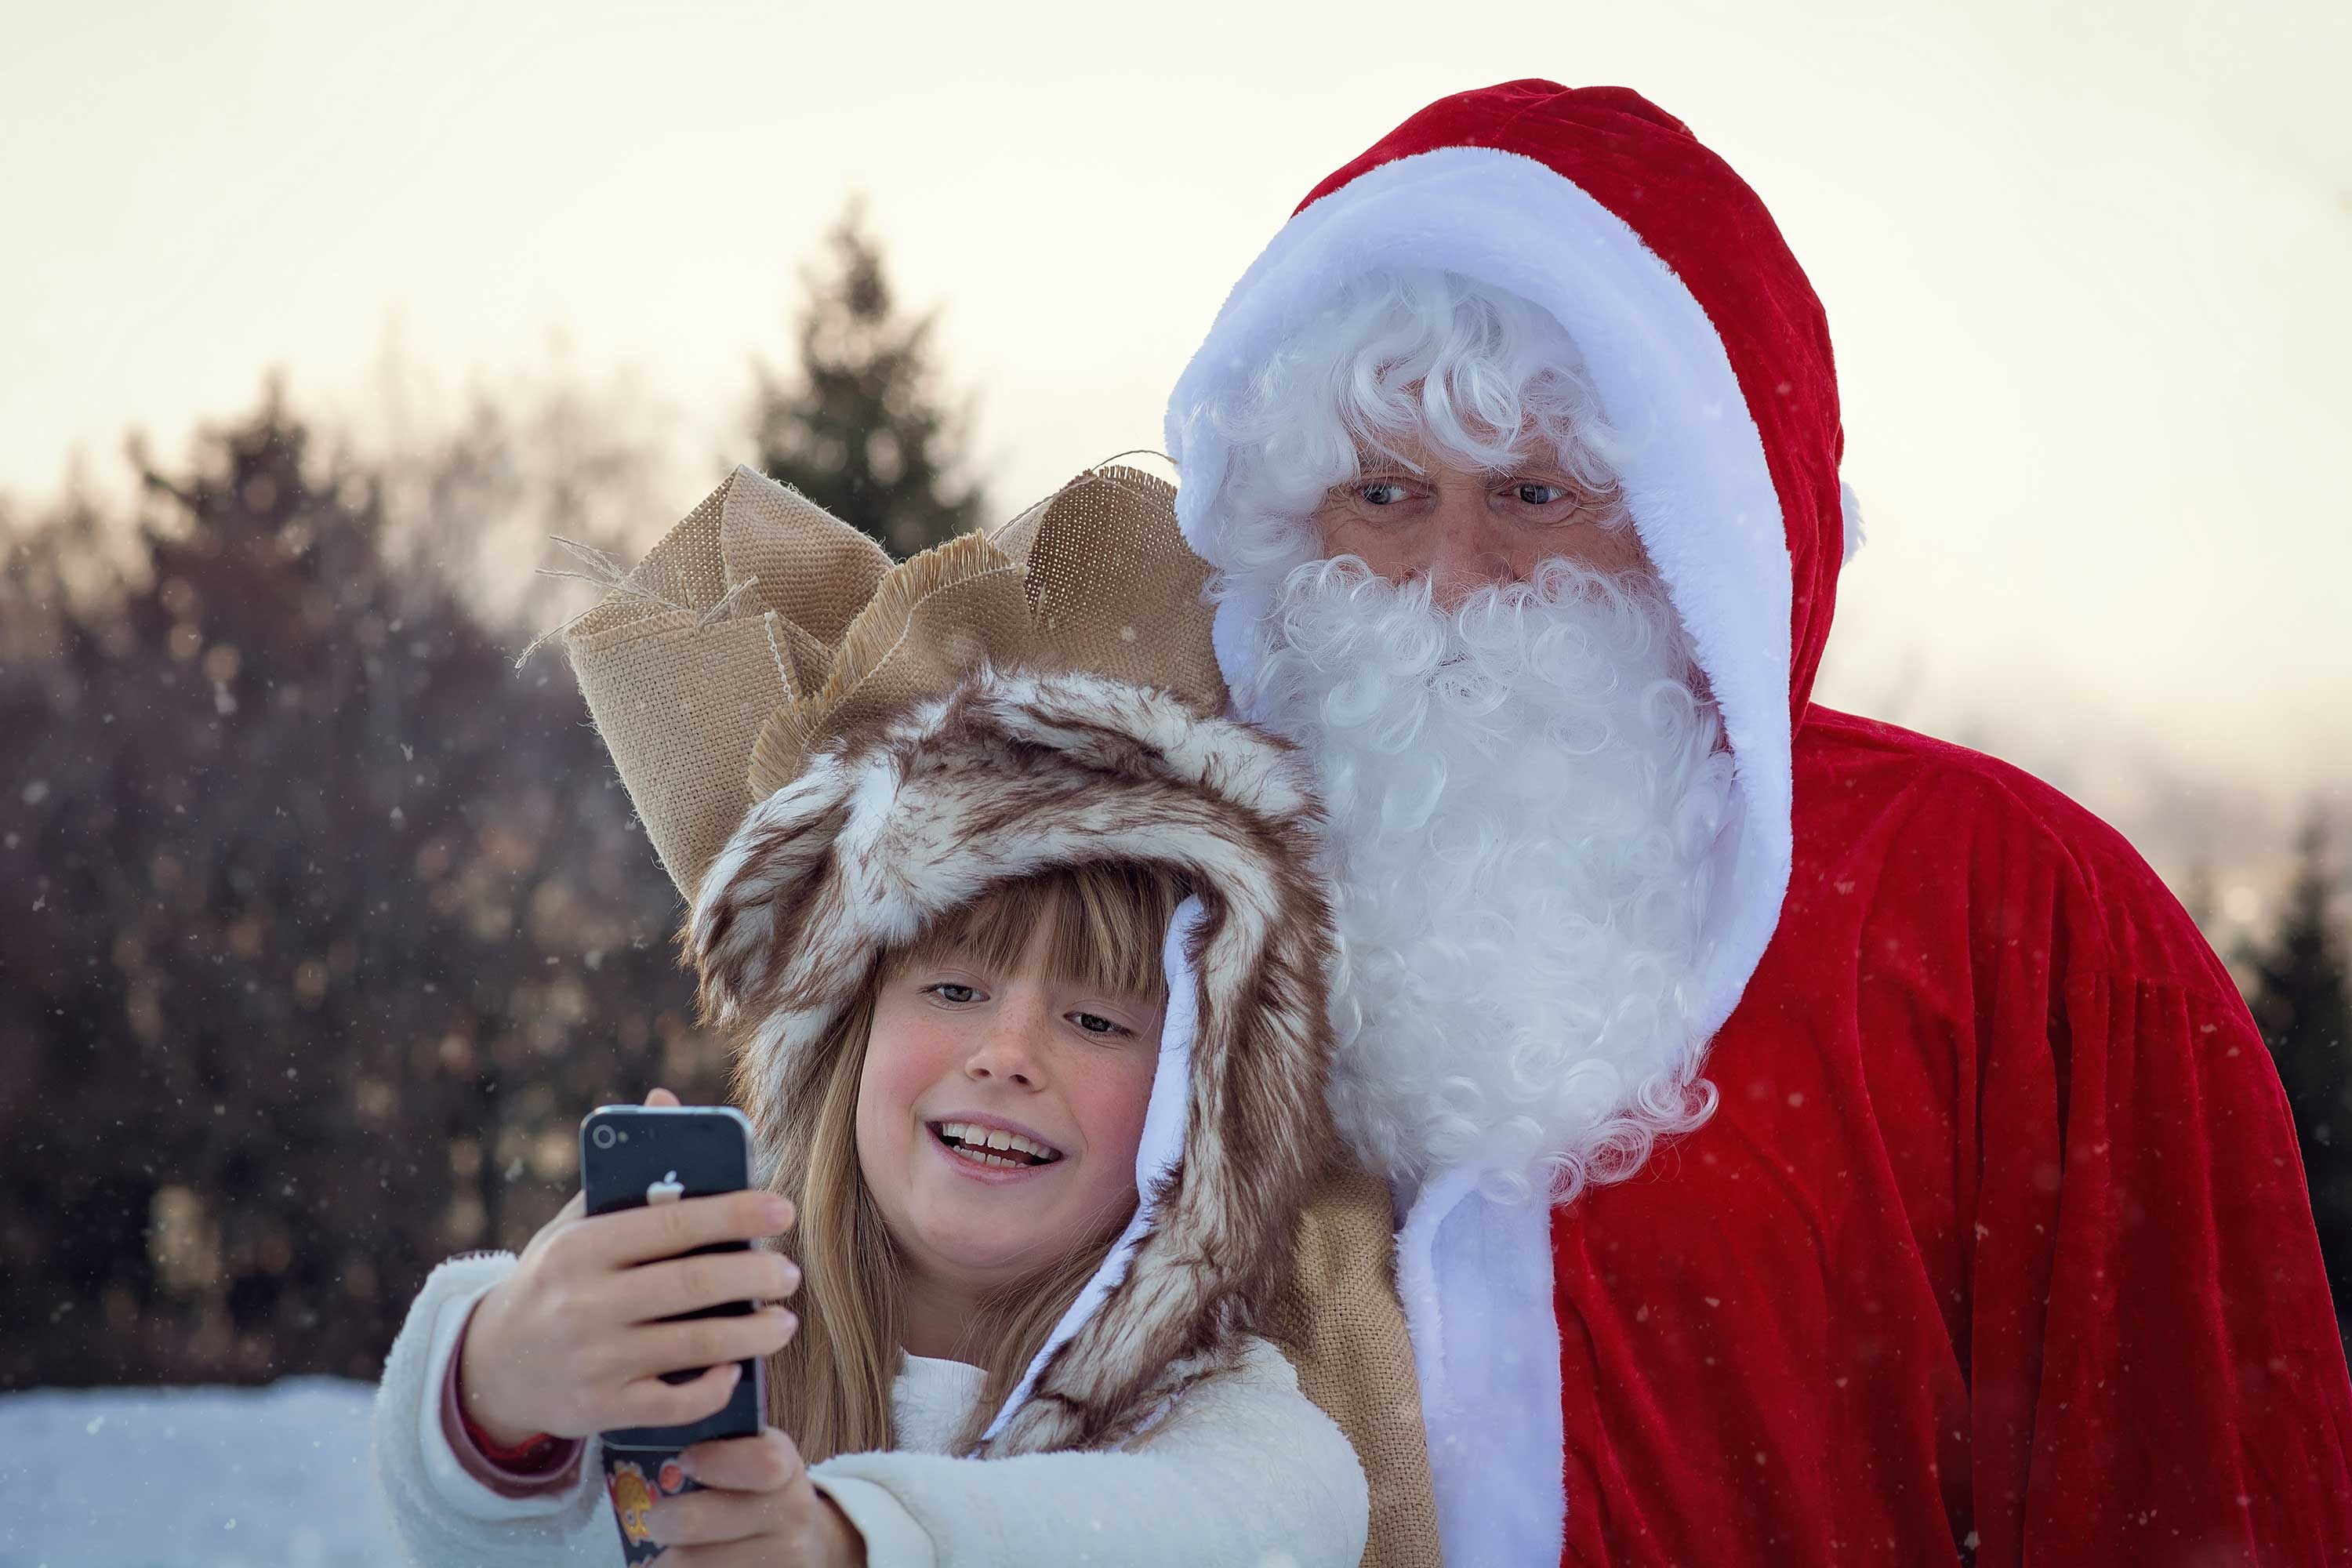 Kid selfie with Santa Clause - Christmas memories